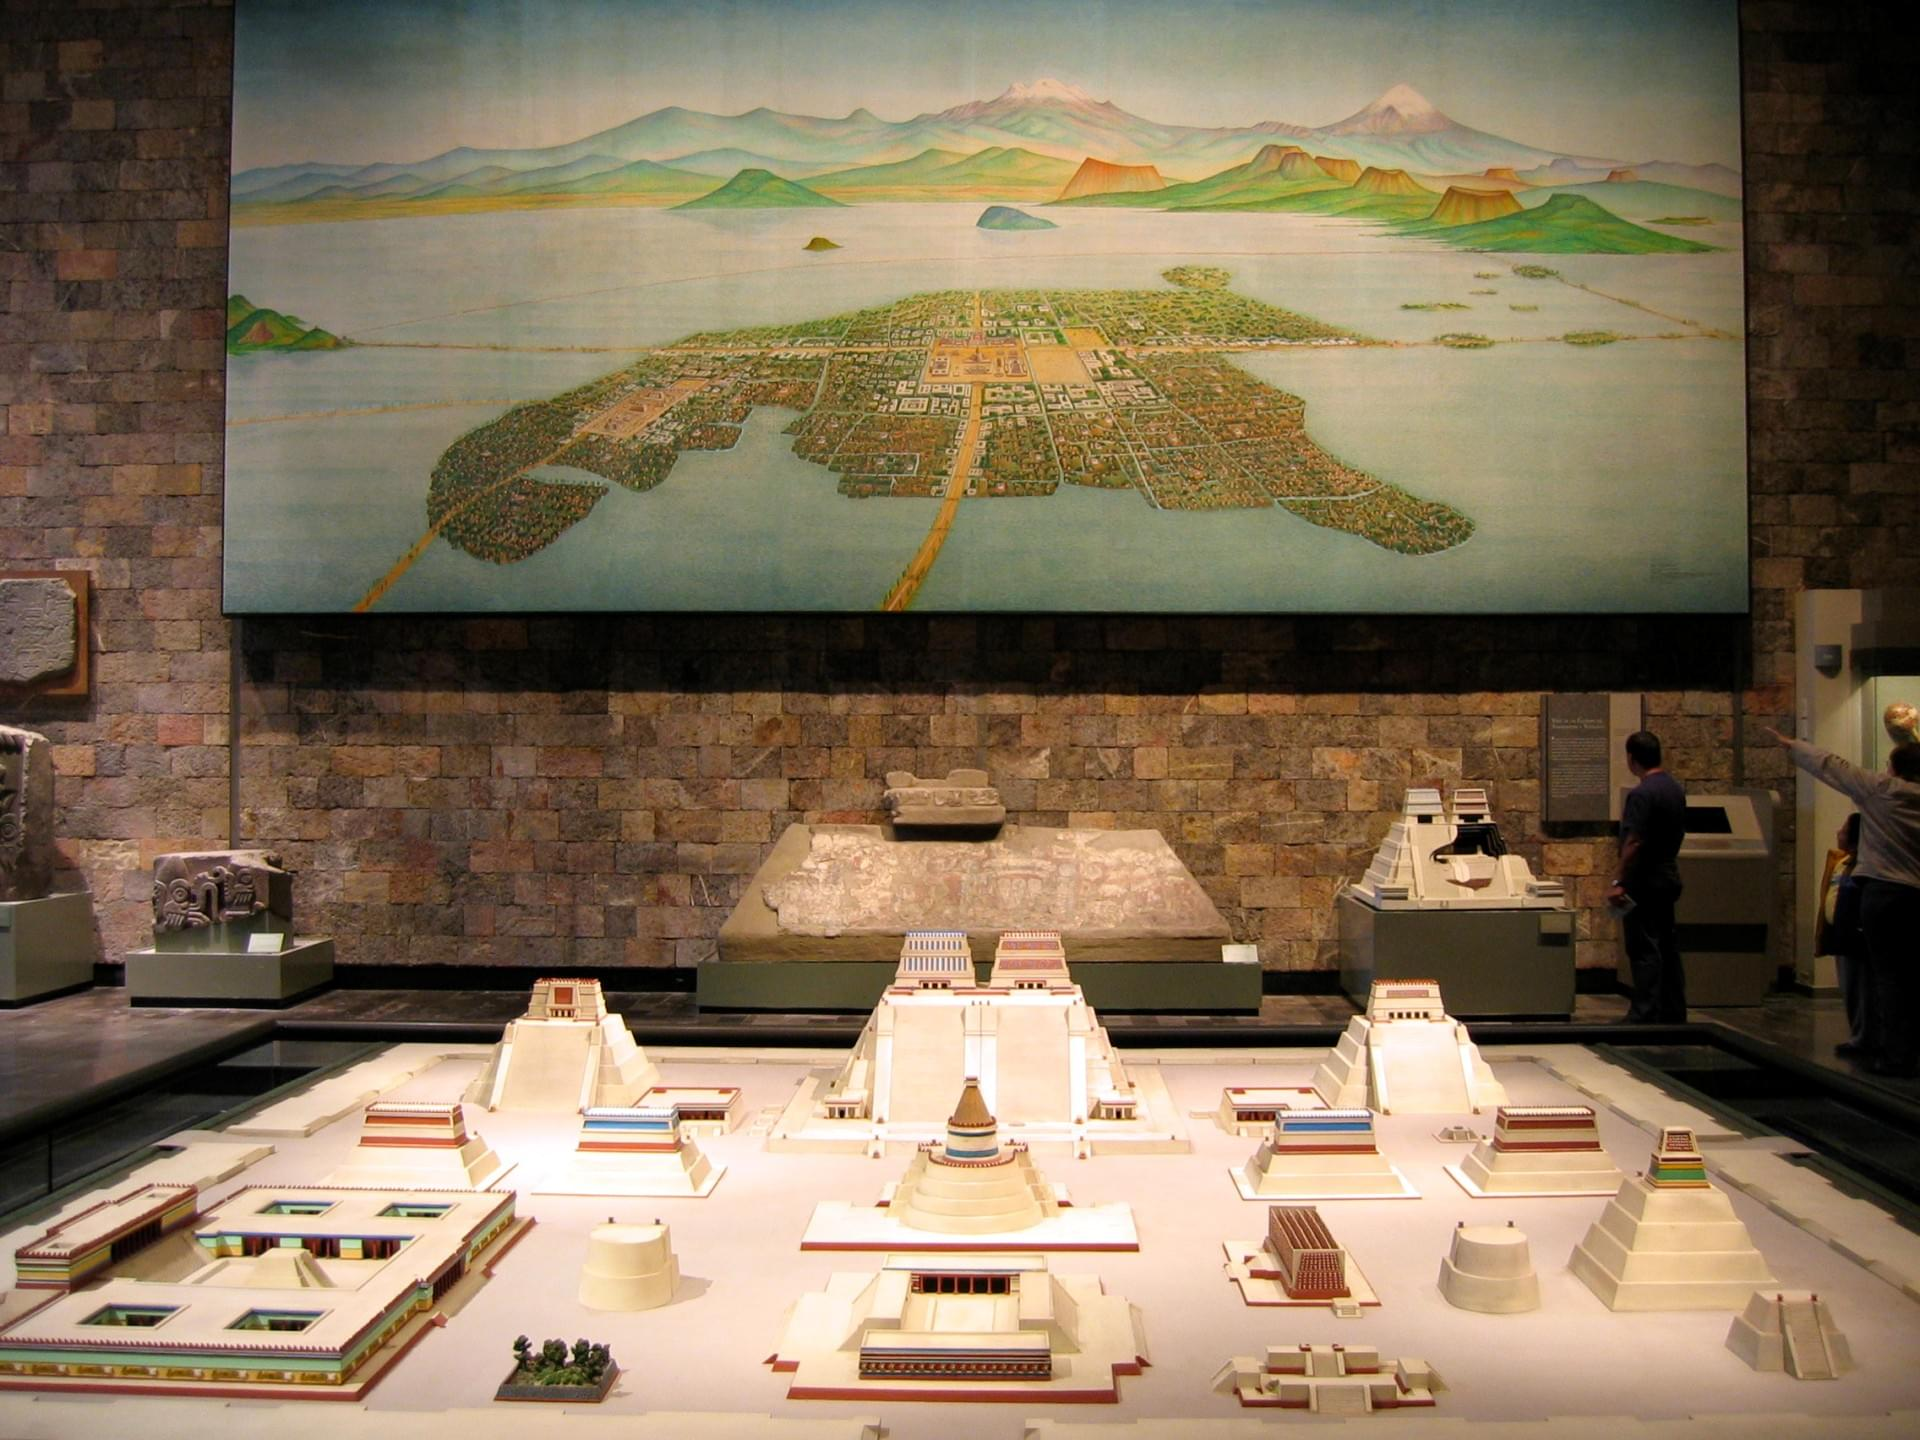 Musée National d'Antropologíe - Mexico